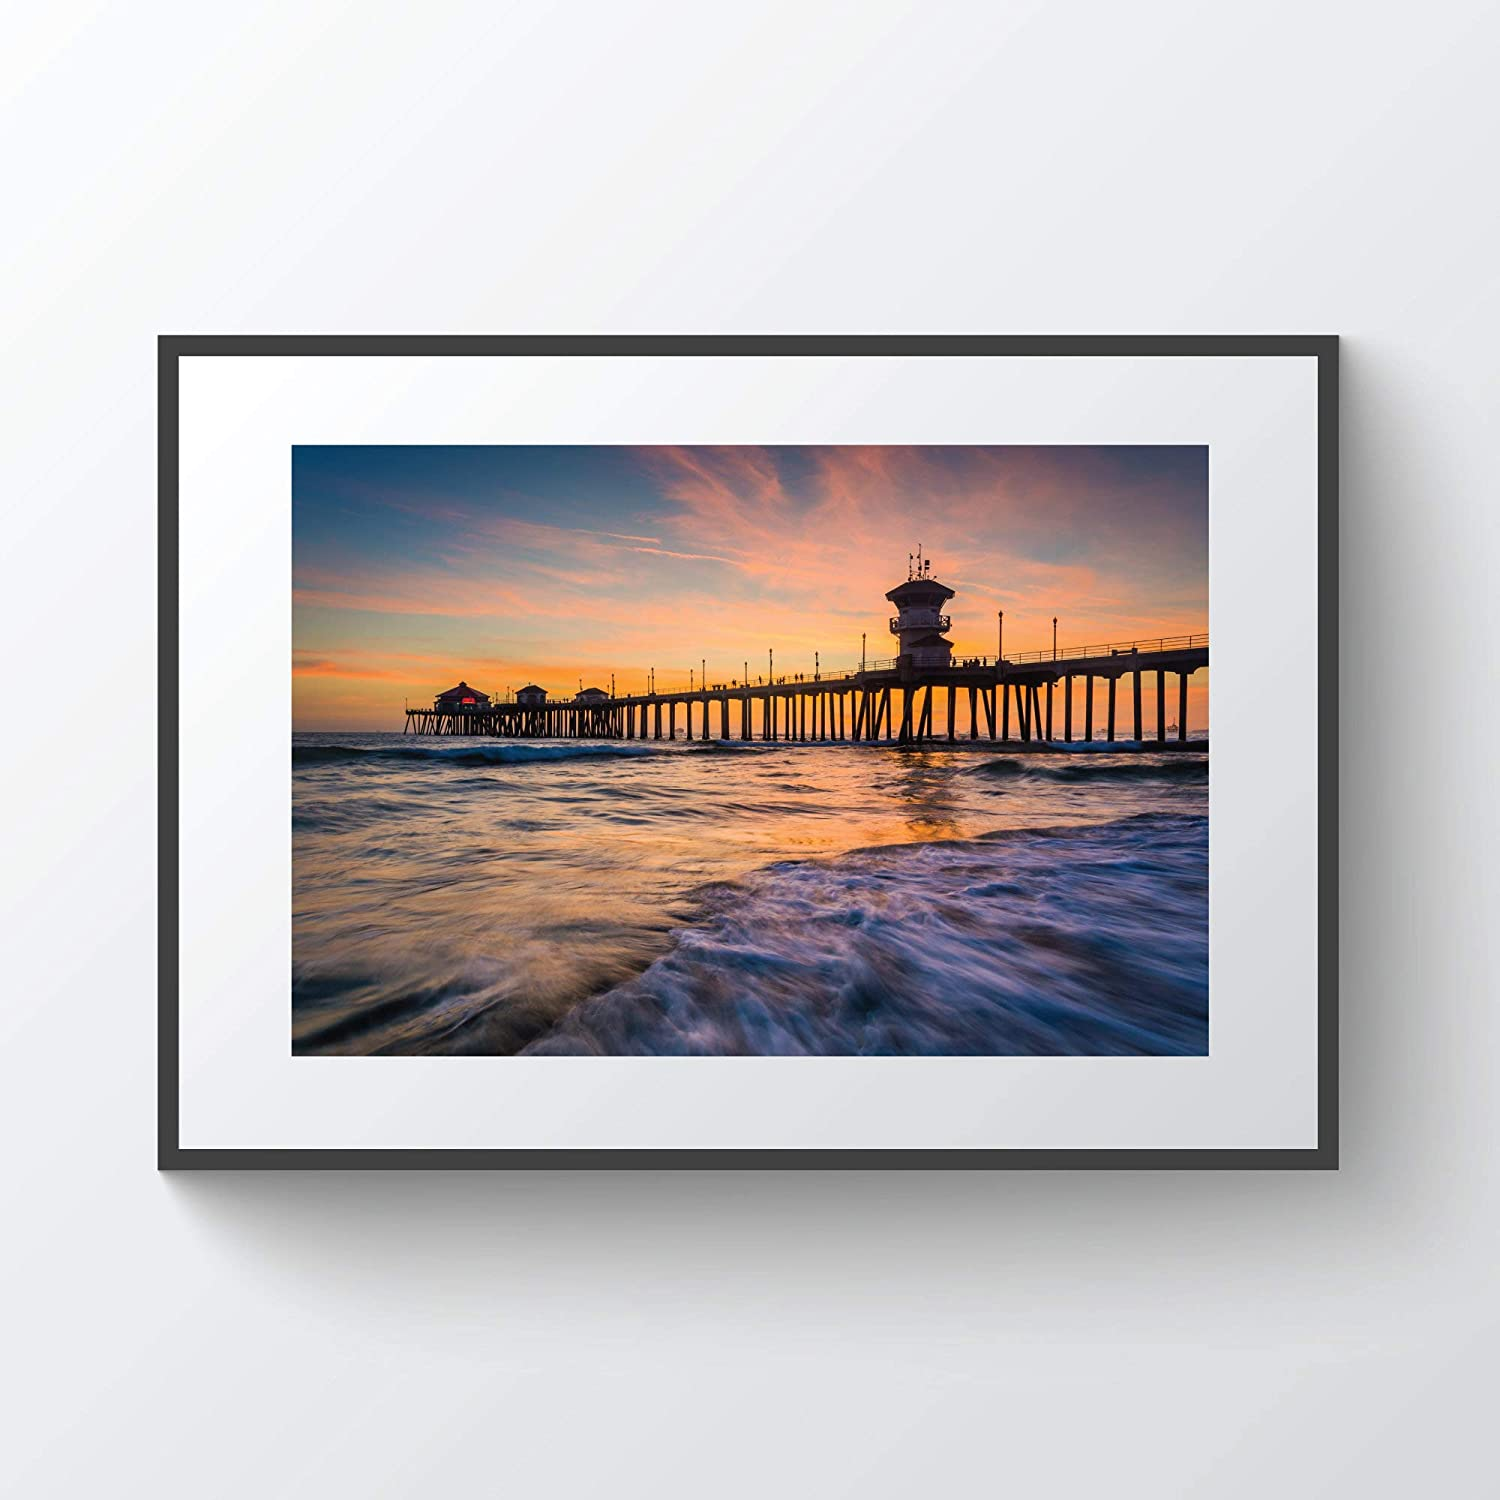 Amazon Com Rfy9u7 Waves In The Pacific Ocean And The Pier At Sunset In Huntington Beach California Photo Print Plywood Framed Posters Prints